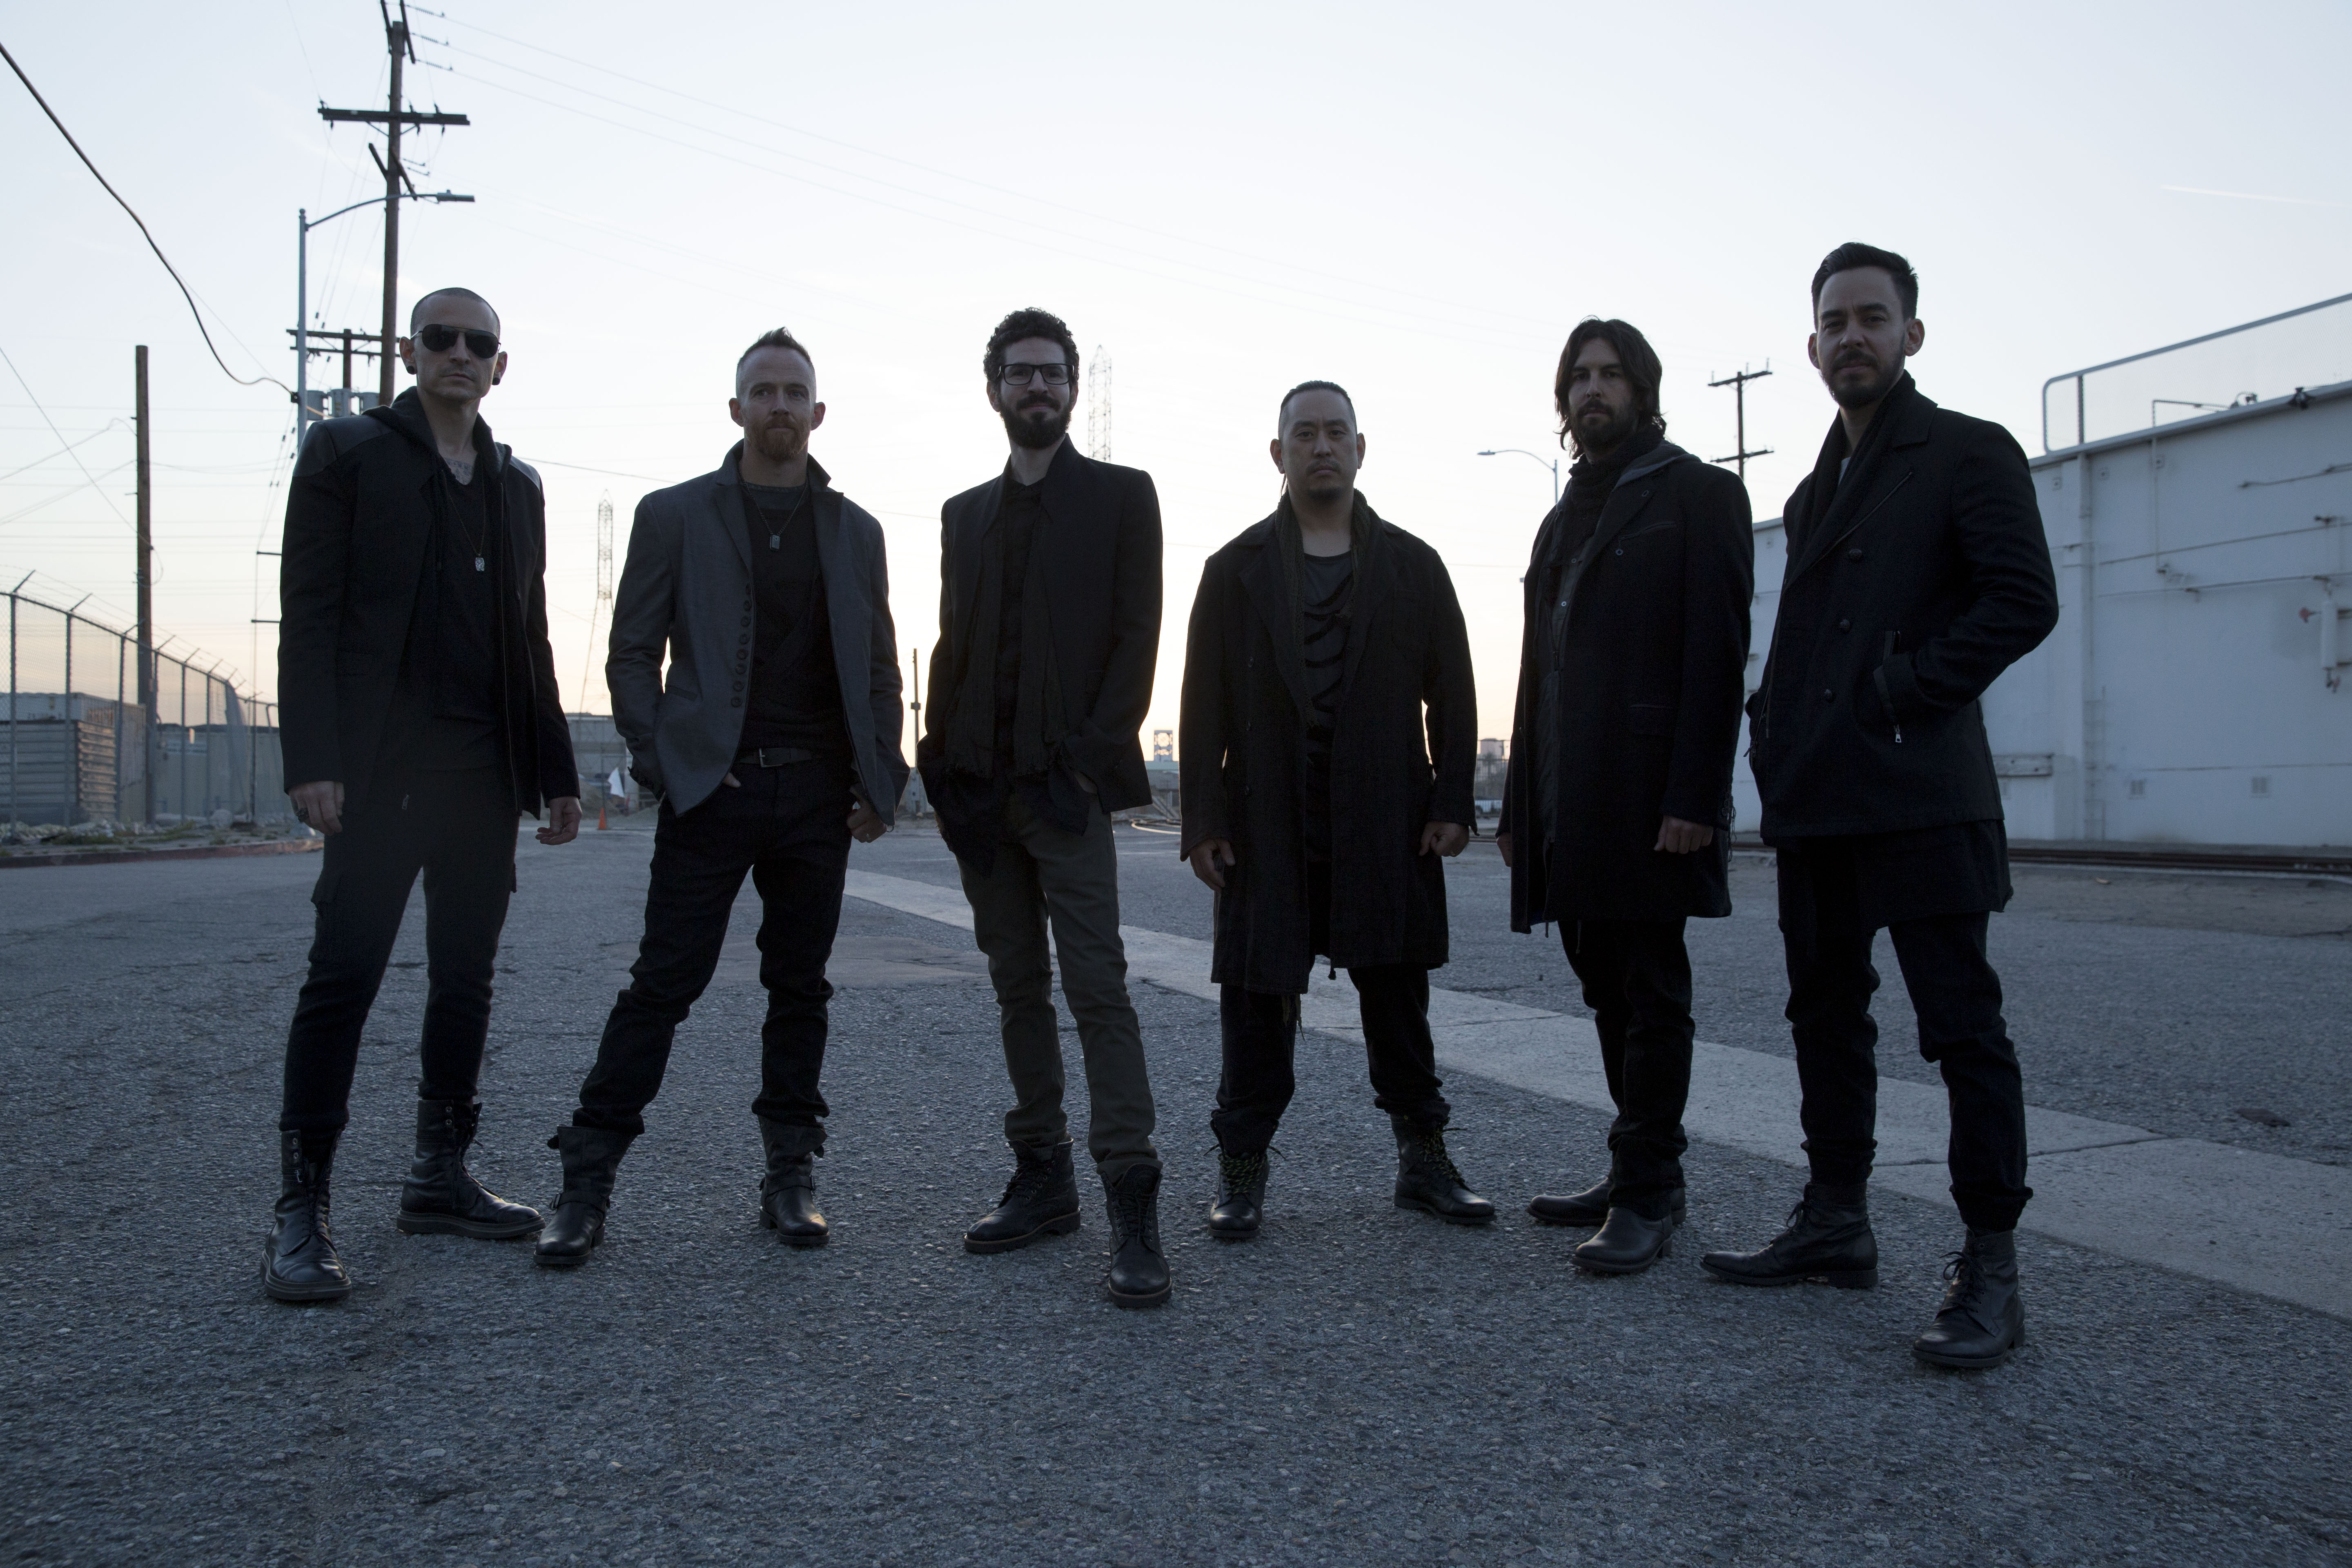 New Uhq Promo Photos Of Linkin Park For The Hunting Party